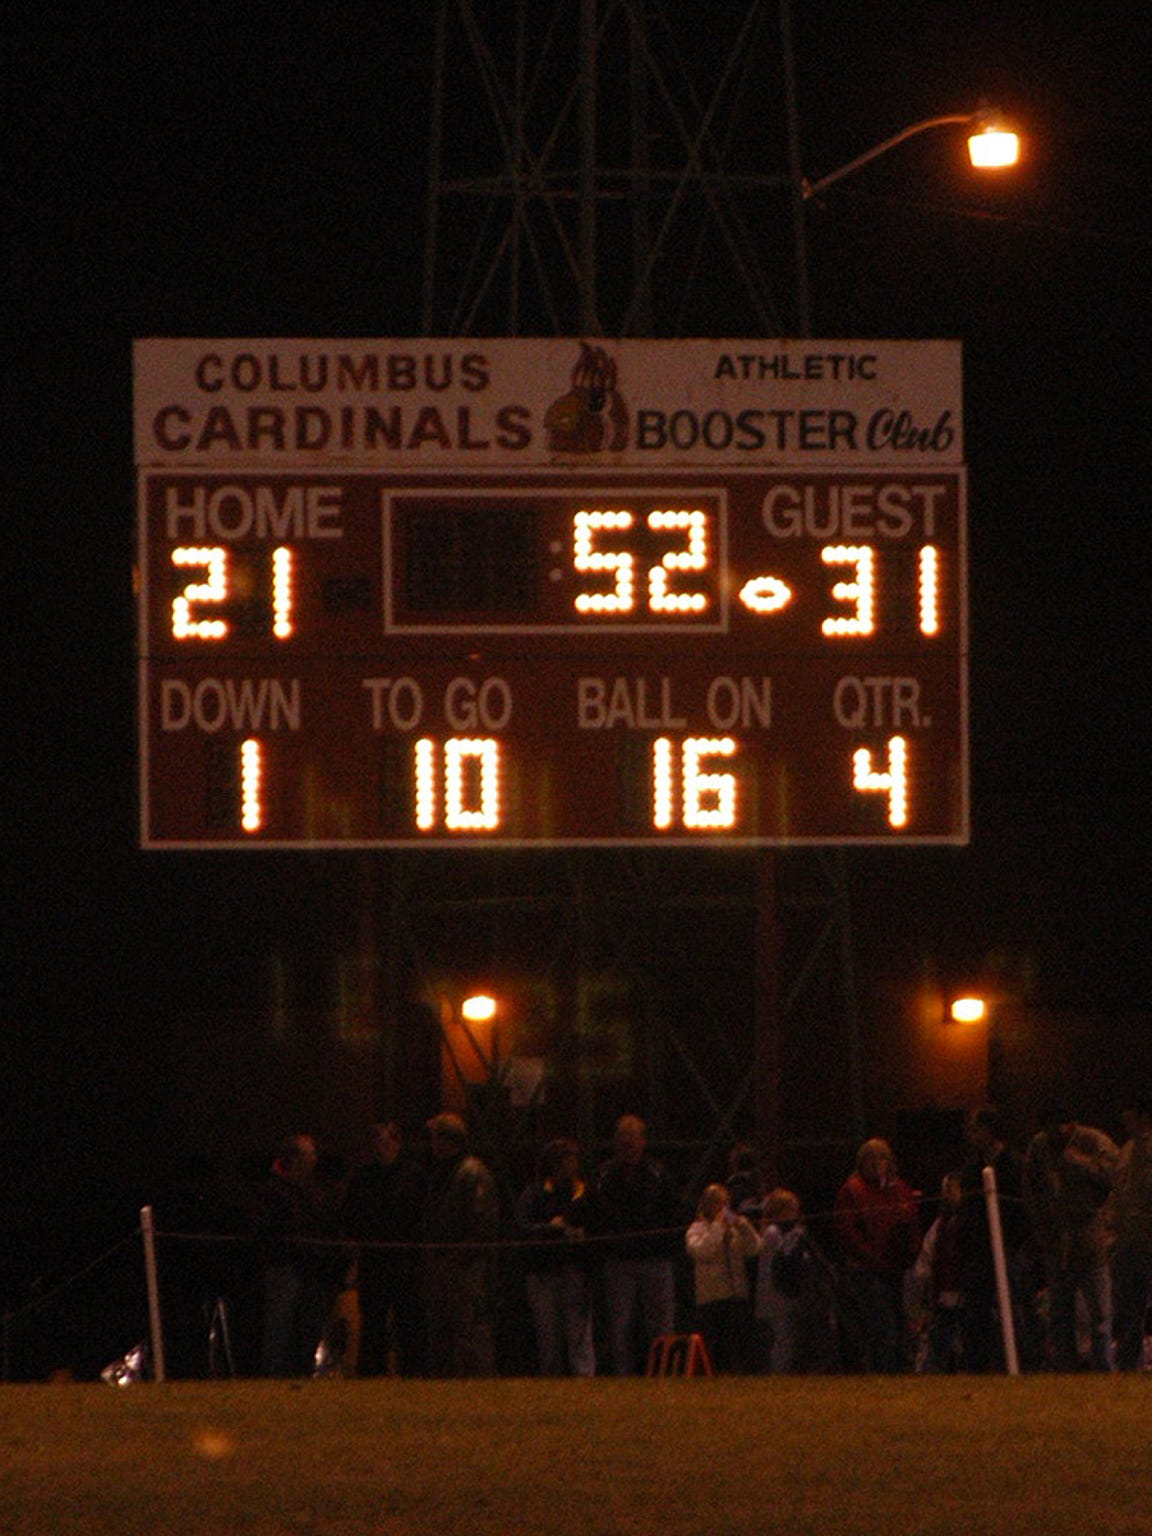 The scoreboard shows Cambridge leading Columbus after an interception sealed the victory in the 2004 regular-season finale.